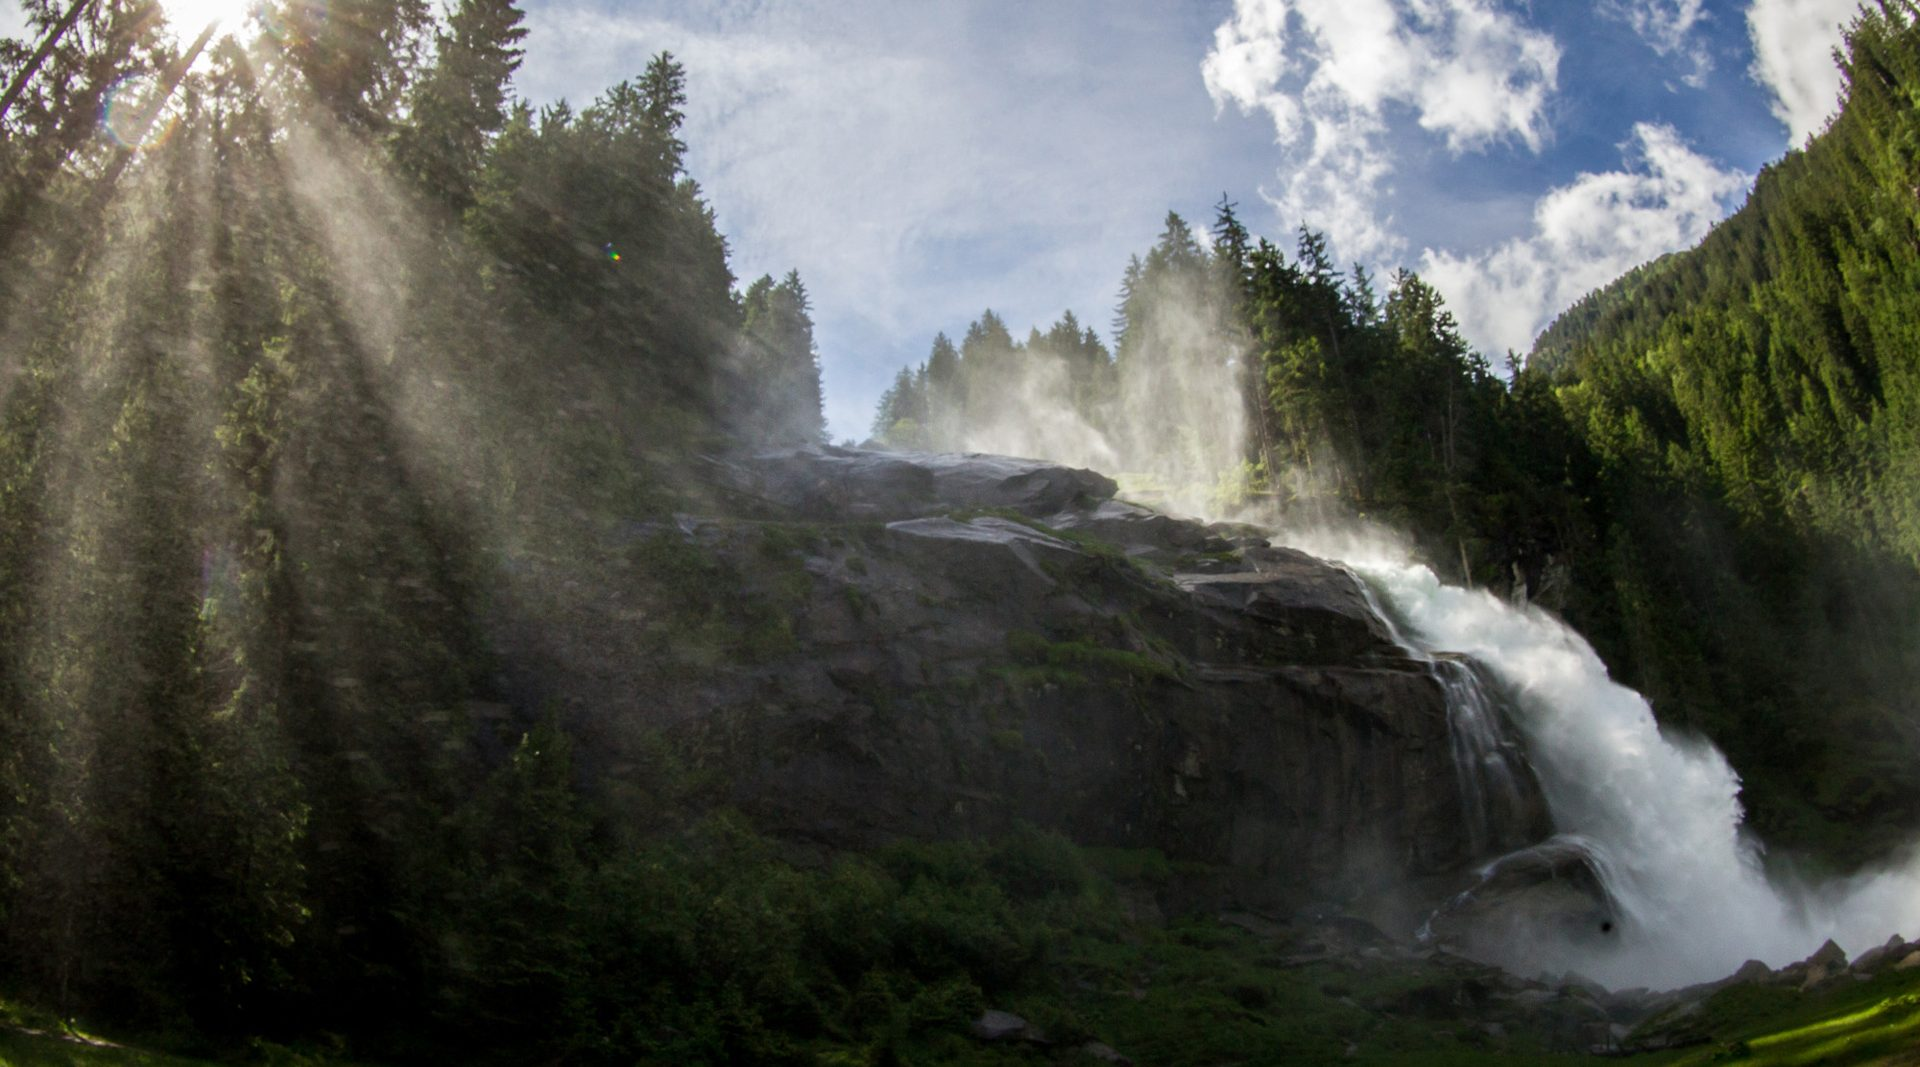 Krimml waterfall in summer - pure water power